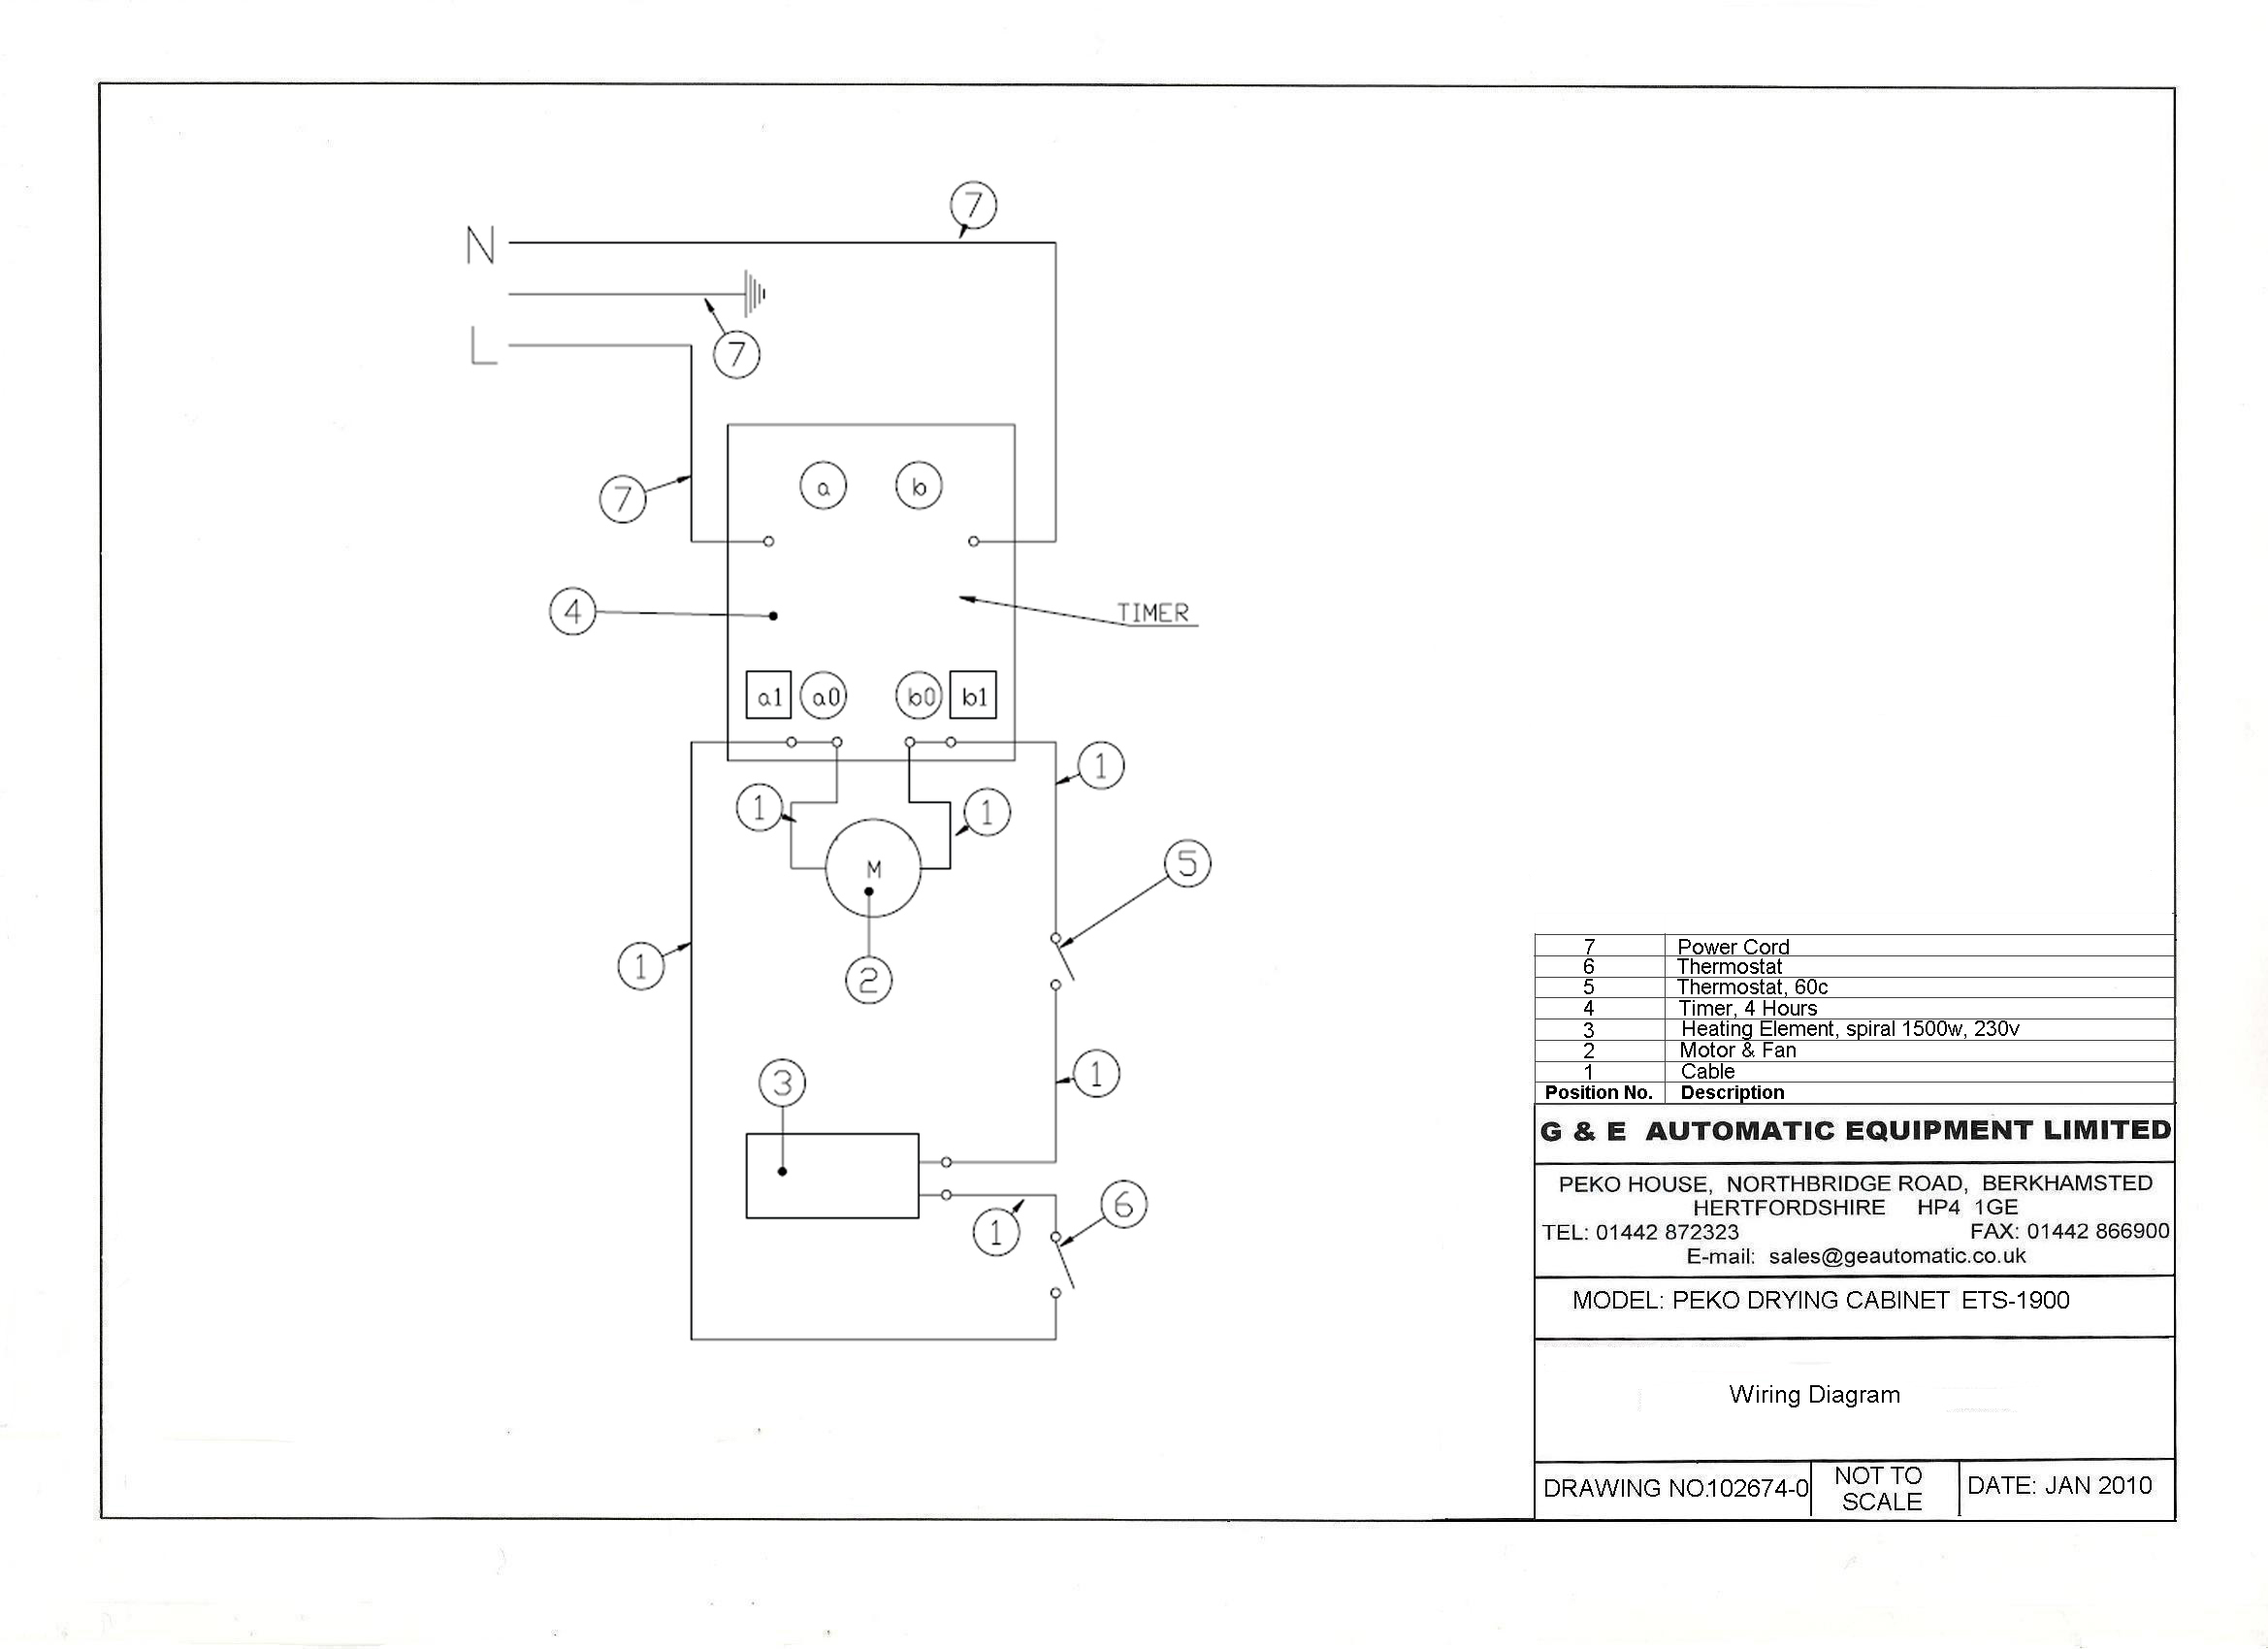 equipment wiring diagrams pin wiring diagram image wiring